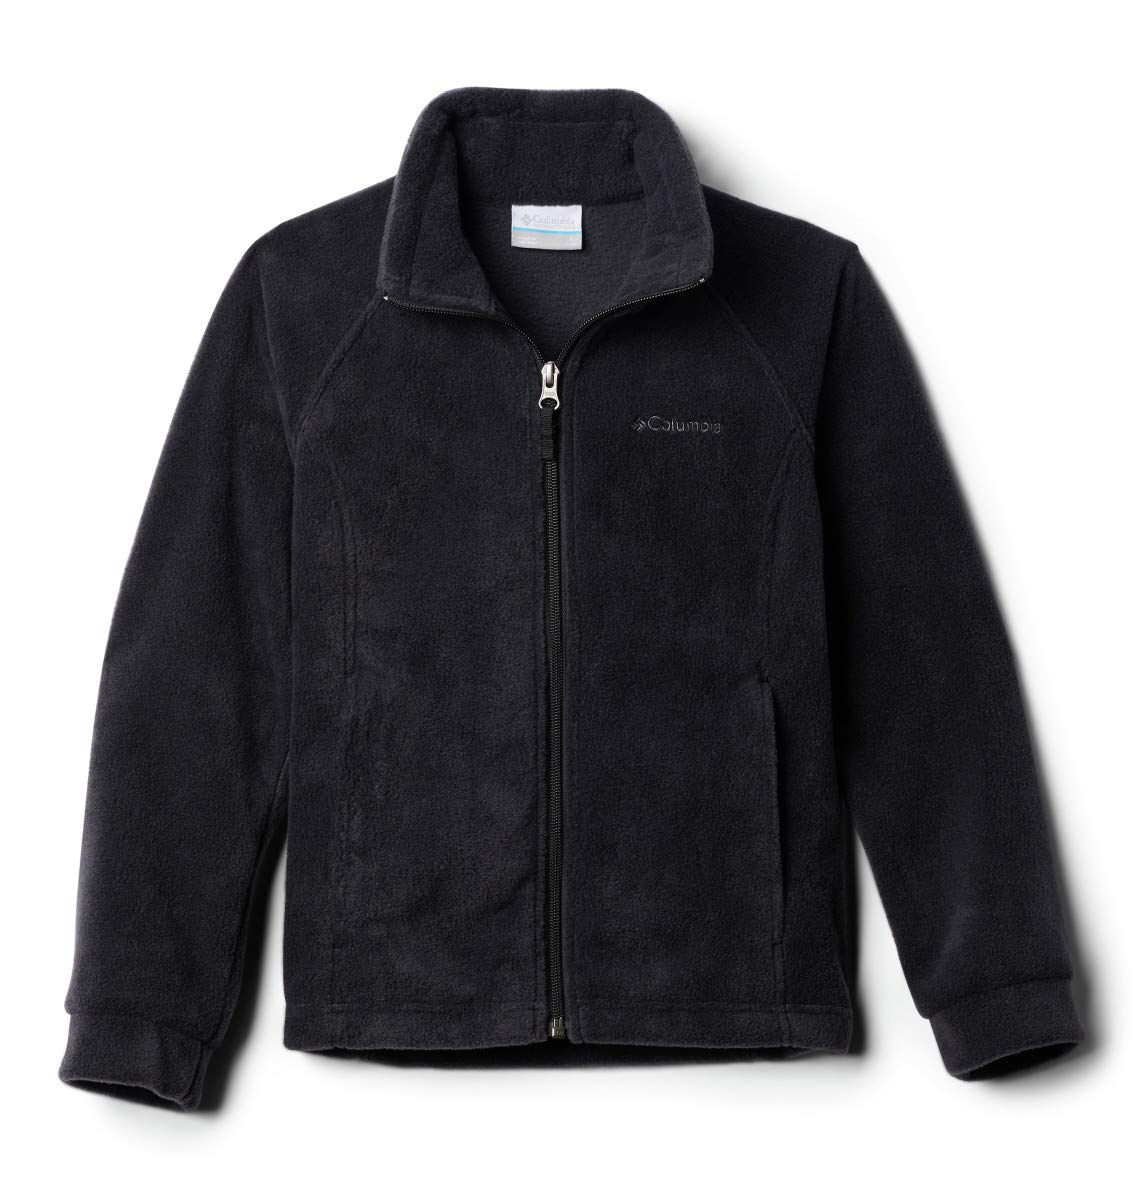 Columbia Girls Benton Springs Fleece Jacket, Black, Small (7/8) by Columbia